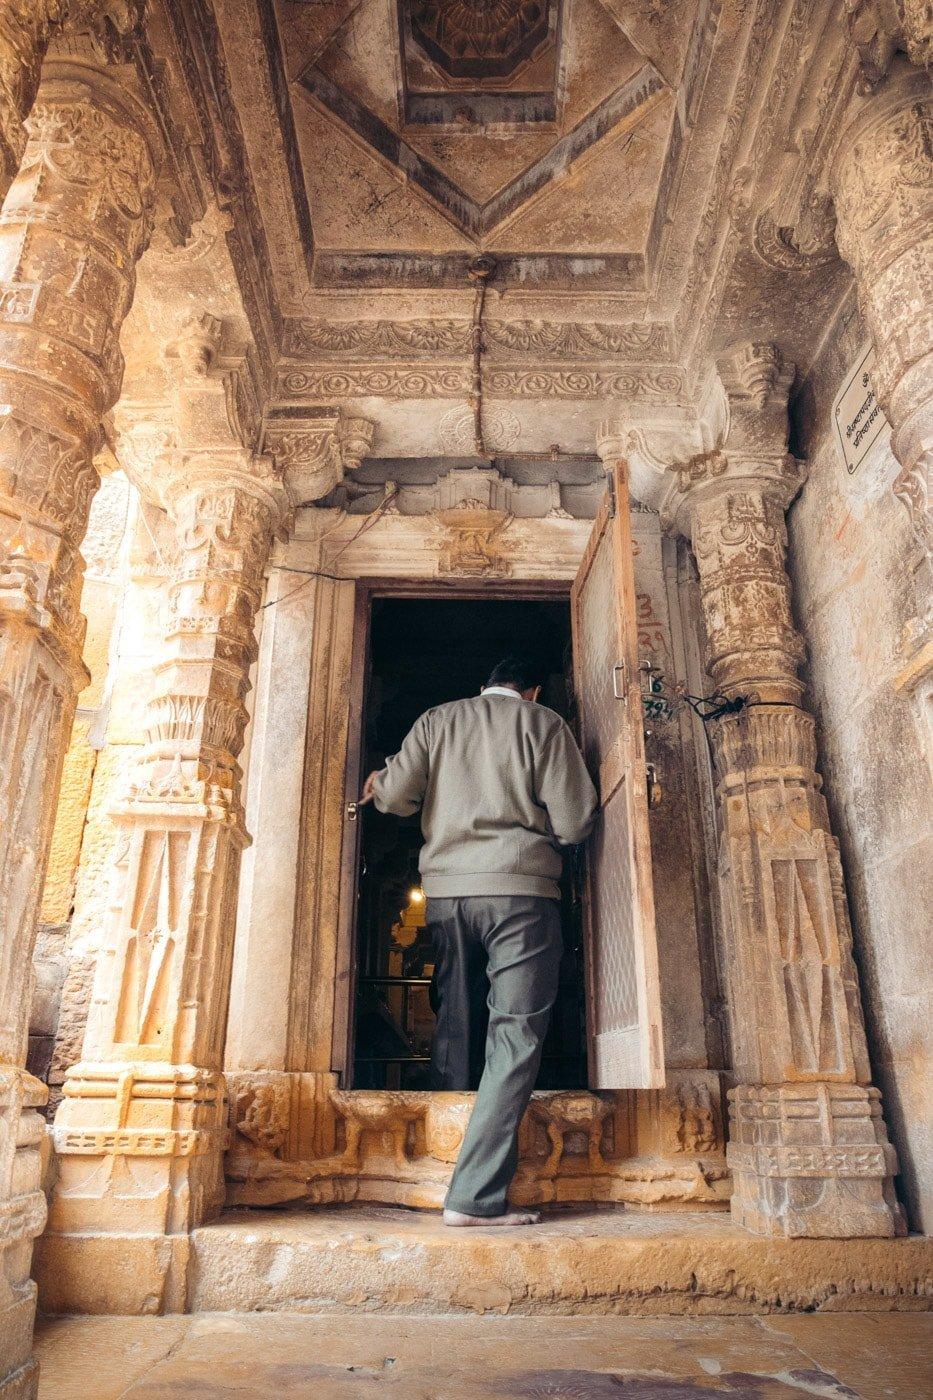 JAIN TEMPLE WITHIN THE JAISALMER FORT IN RAJASTHAN, INDIA